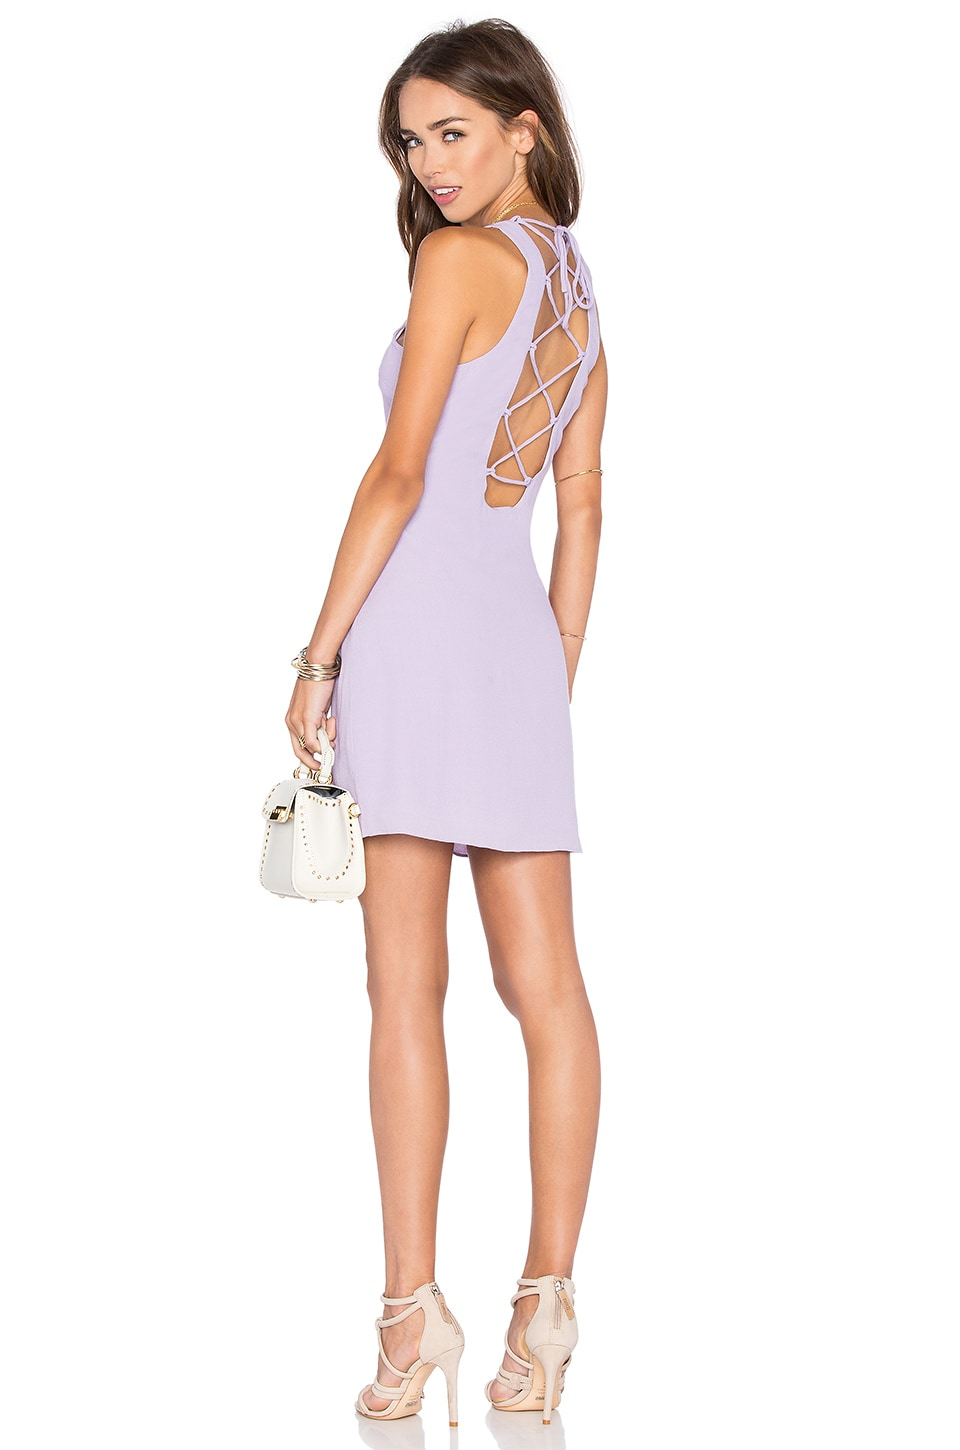 NBD x Naven Twins Headspins Laced Back Mini Dress in Lavender